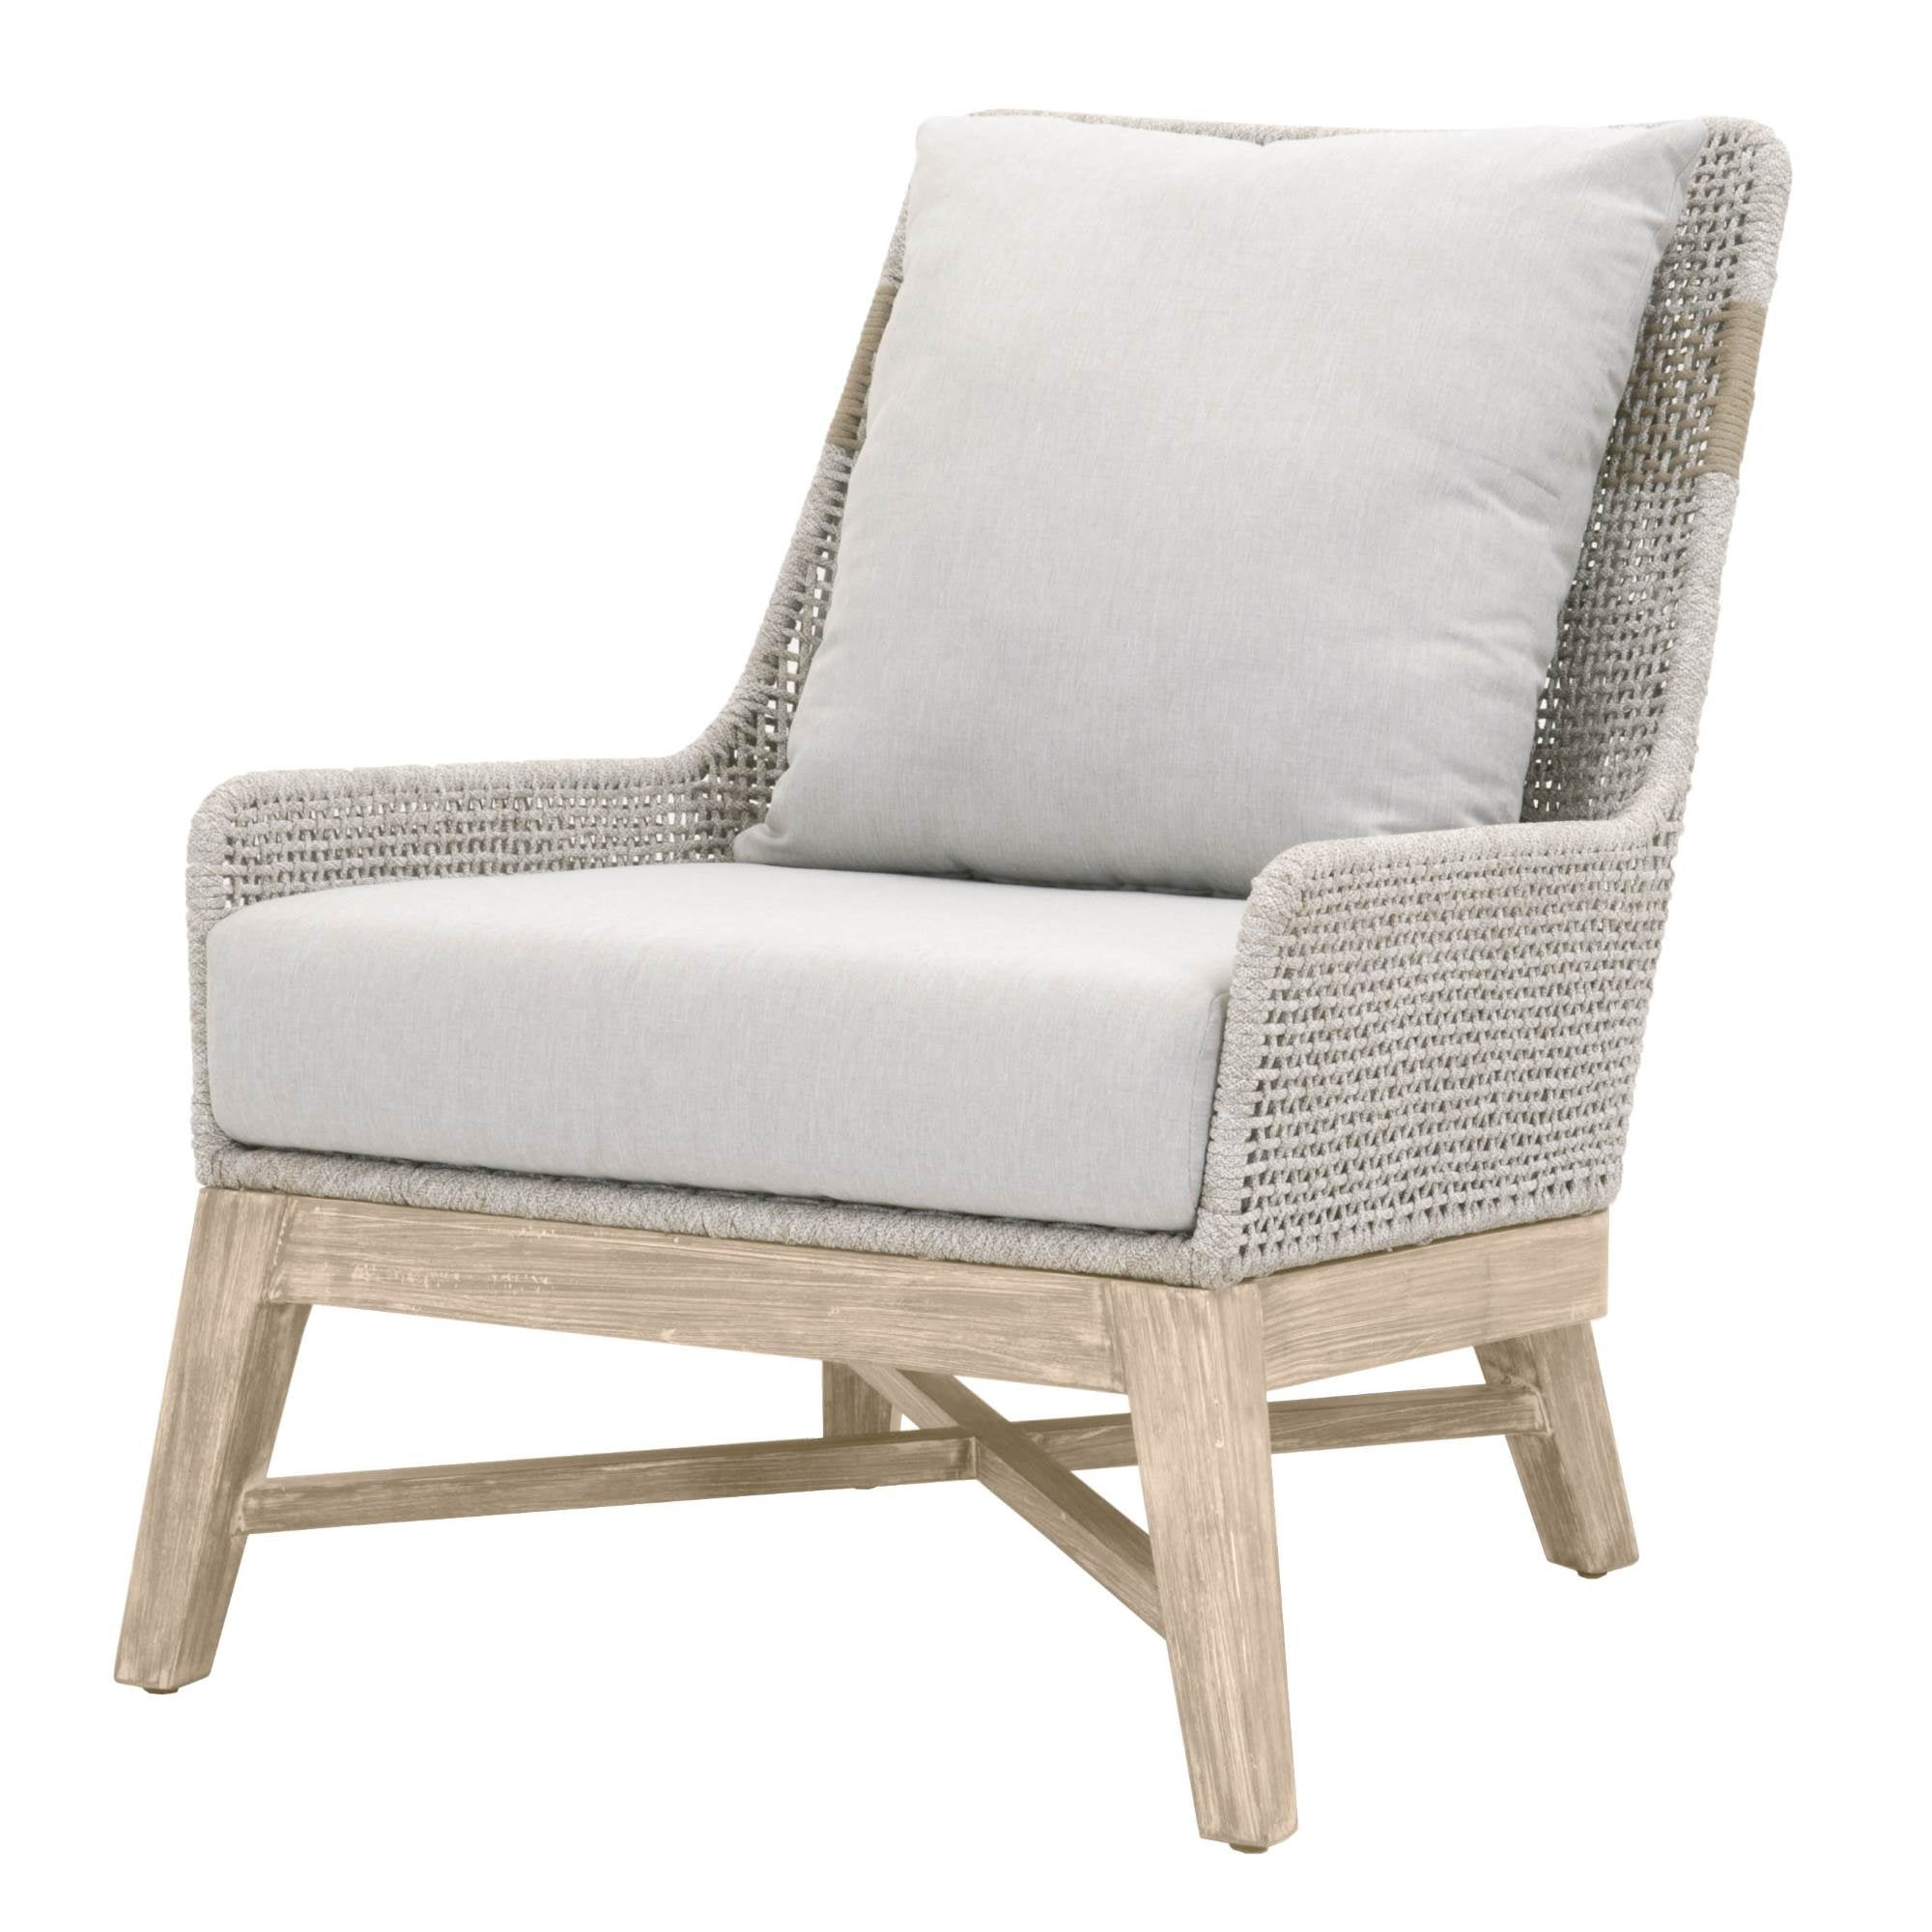 Nash Outdoor Club Chair